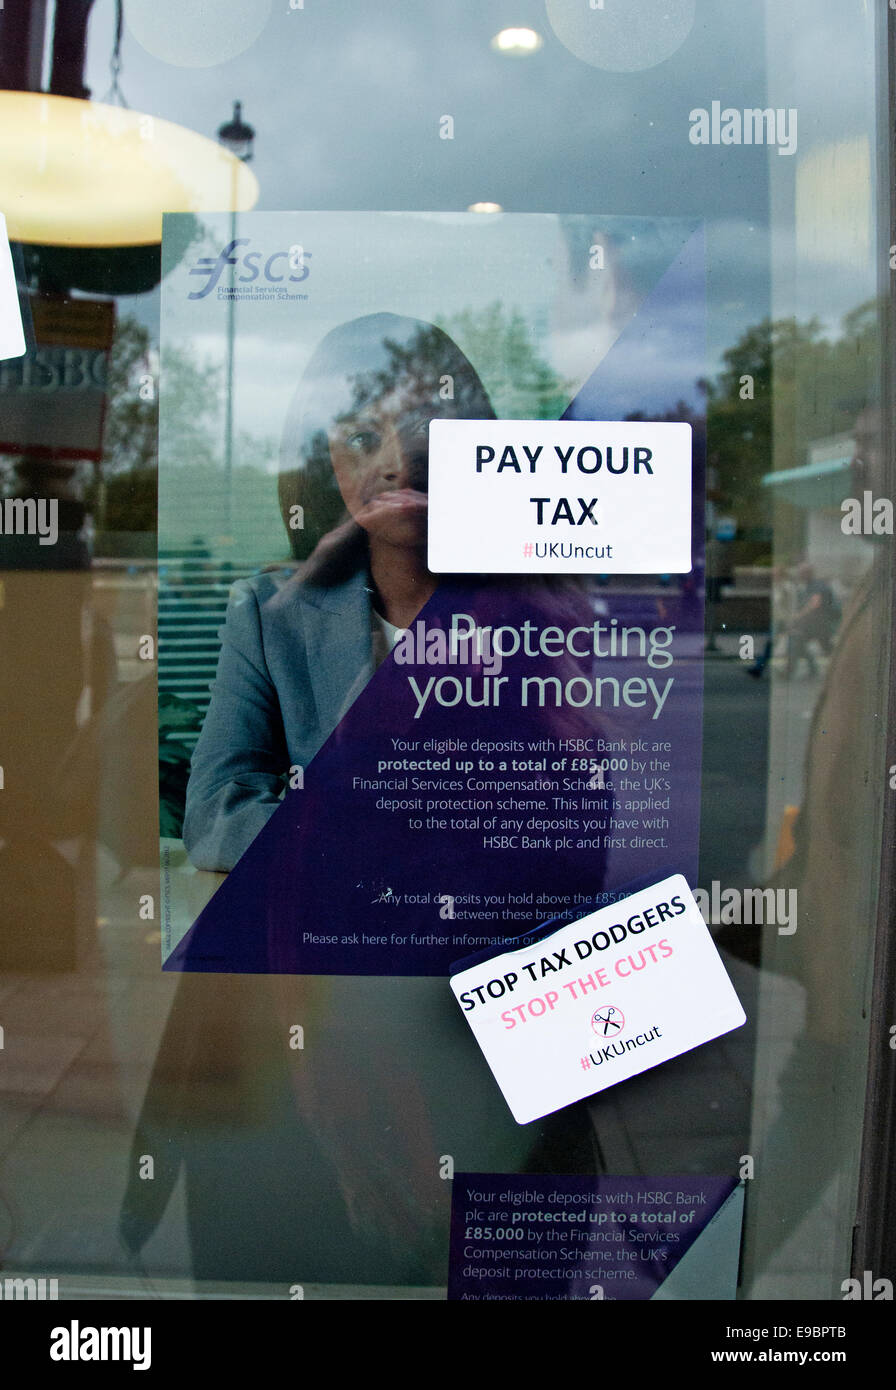 Protesters put UK Uncut stickers on shops they feel are dodging tax - Stock Image